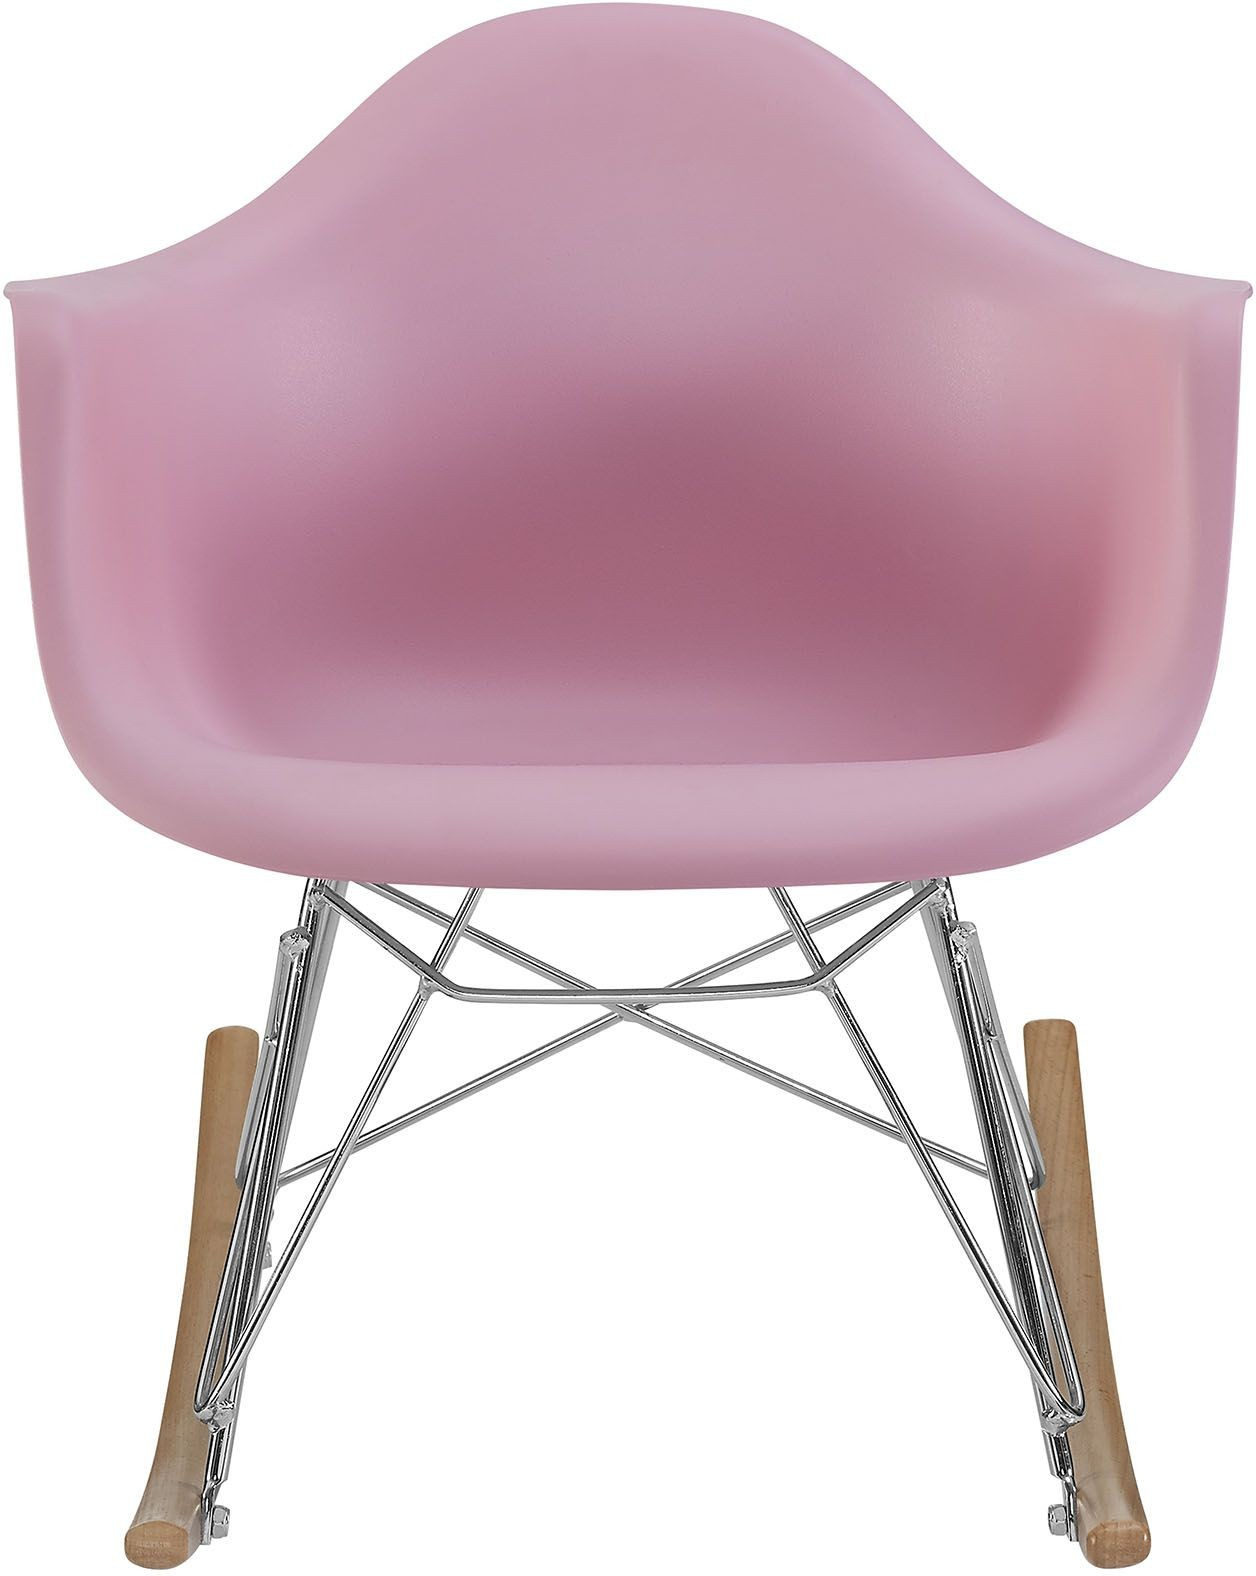 Rocker pink kids chair from renegade coleman furniture for Pink kids chair